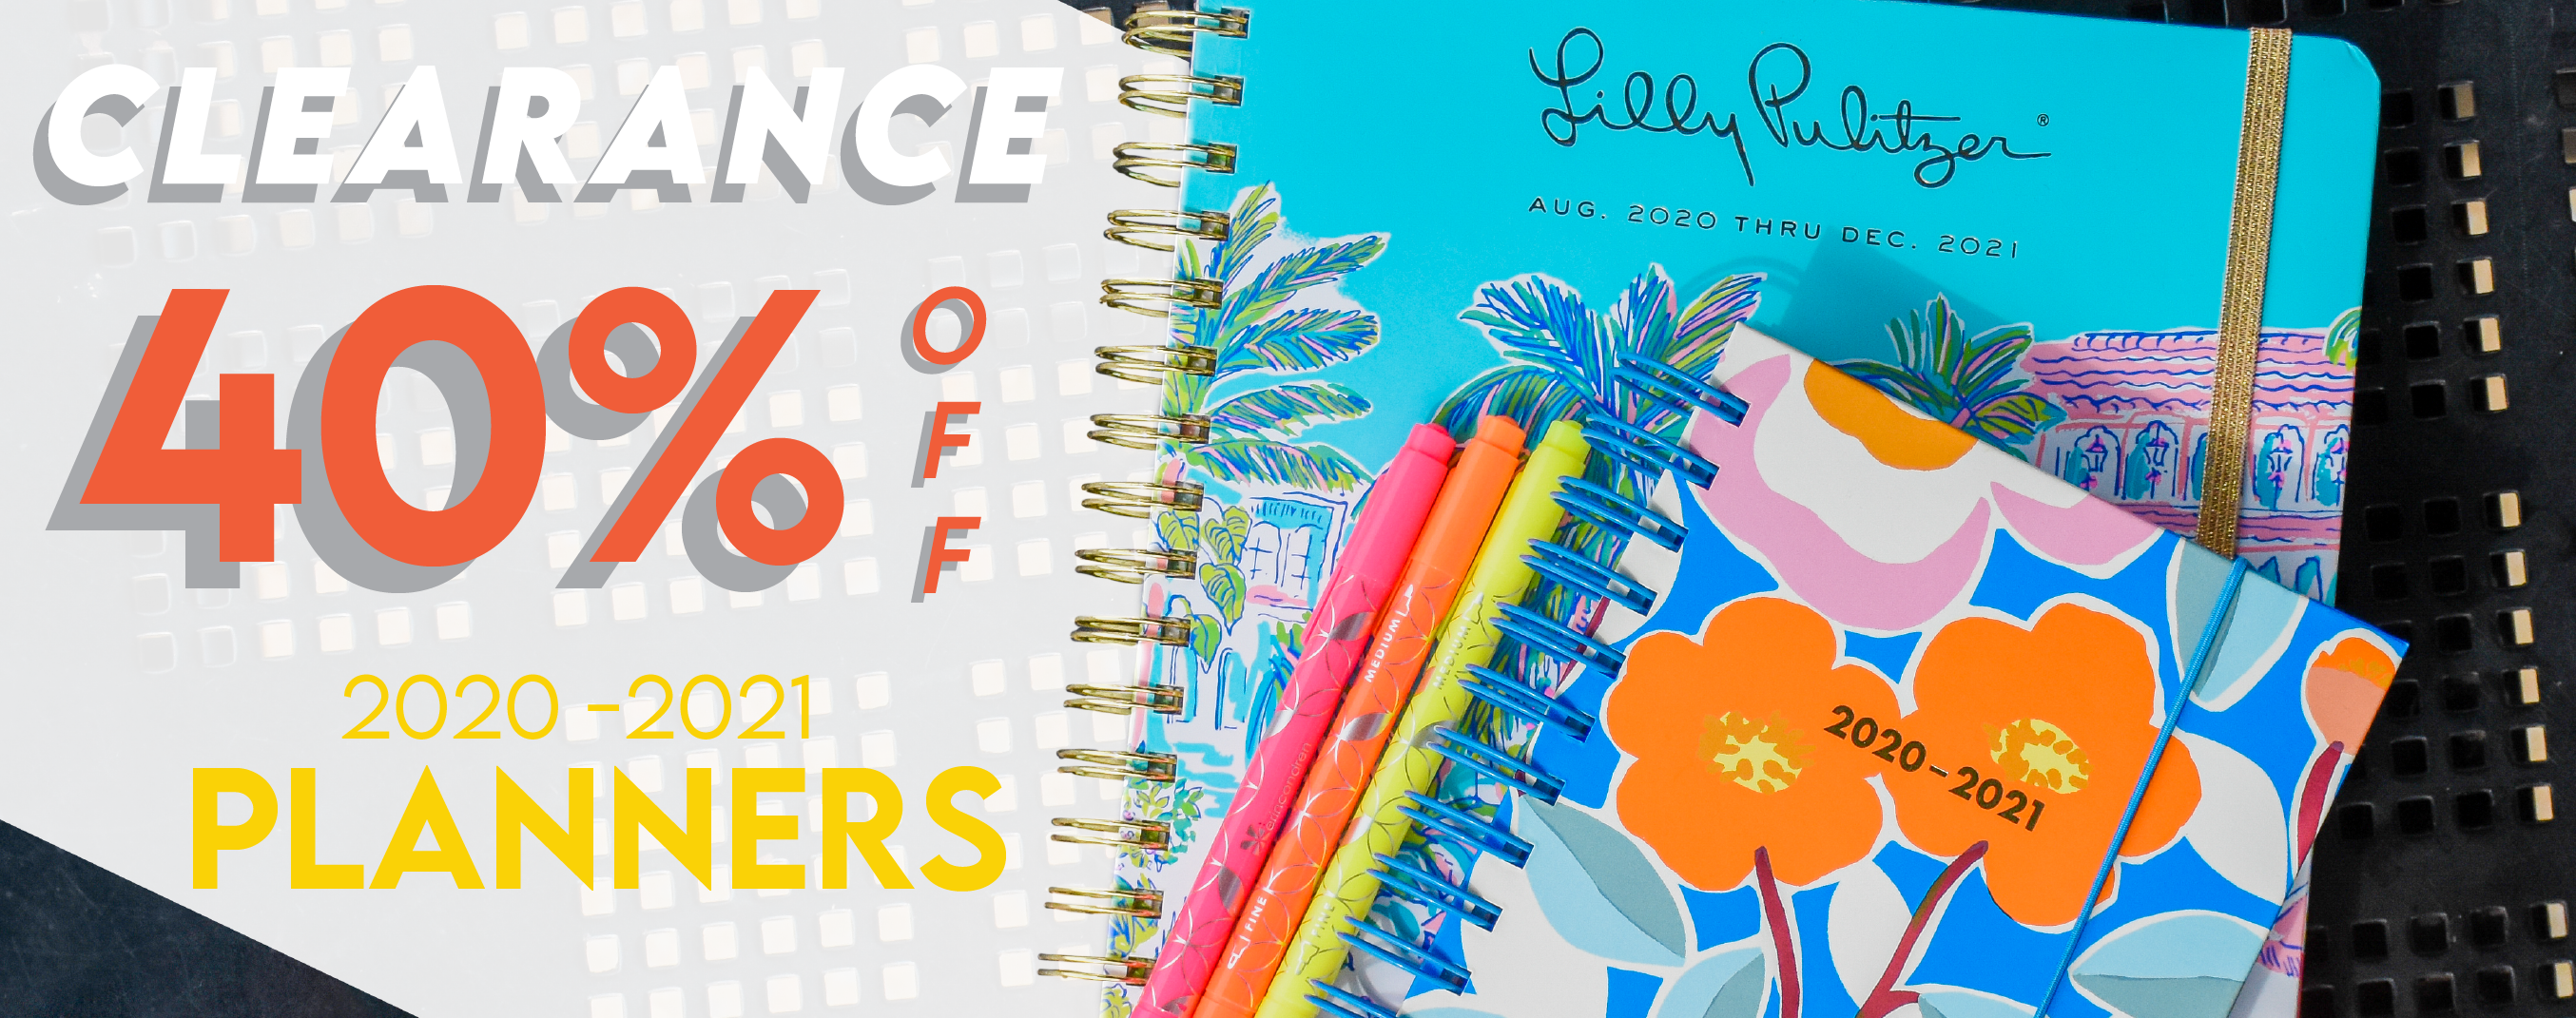 Shop 2020-2021 planners now with 40% off through June 26th.